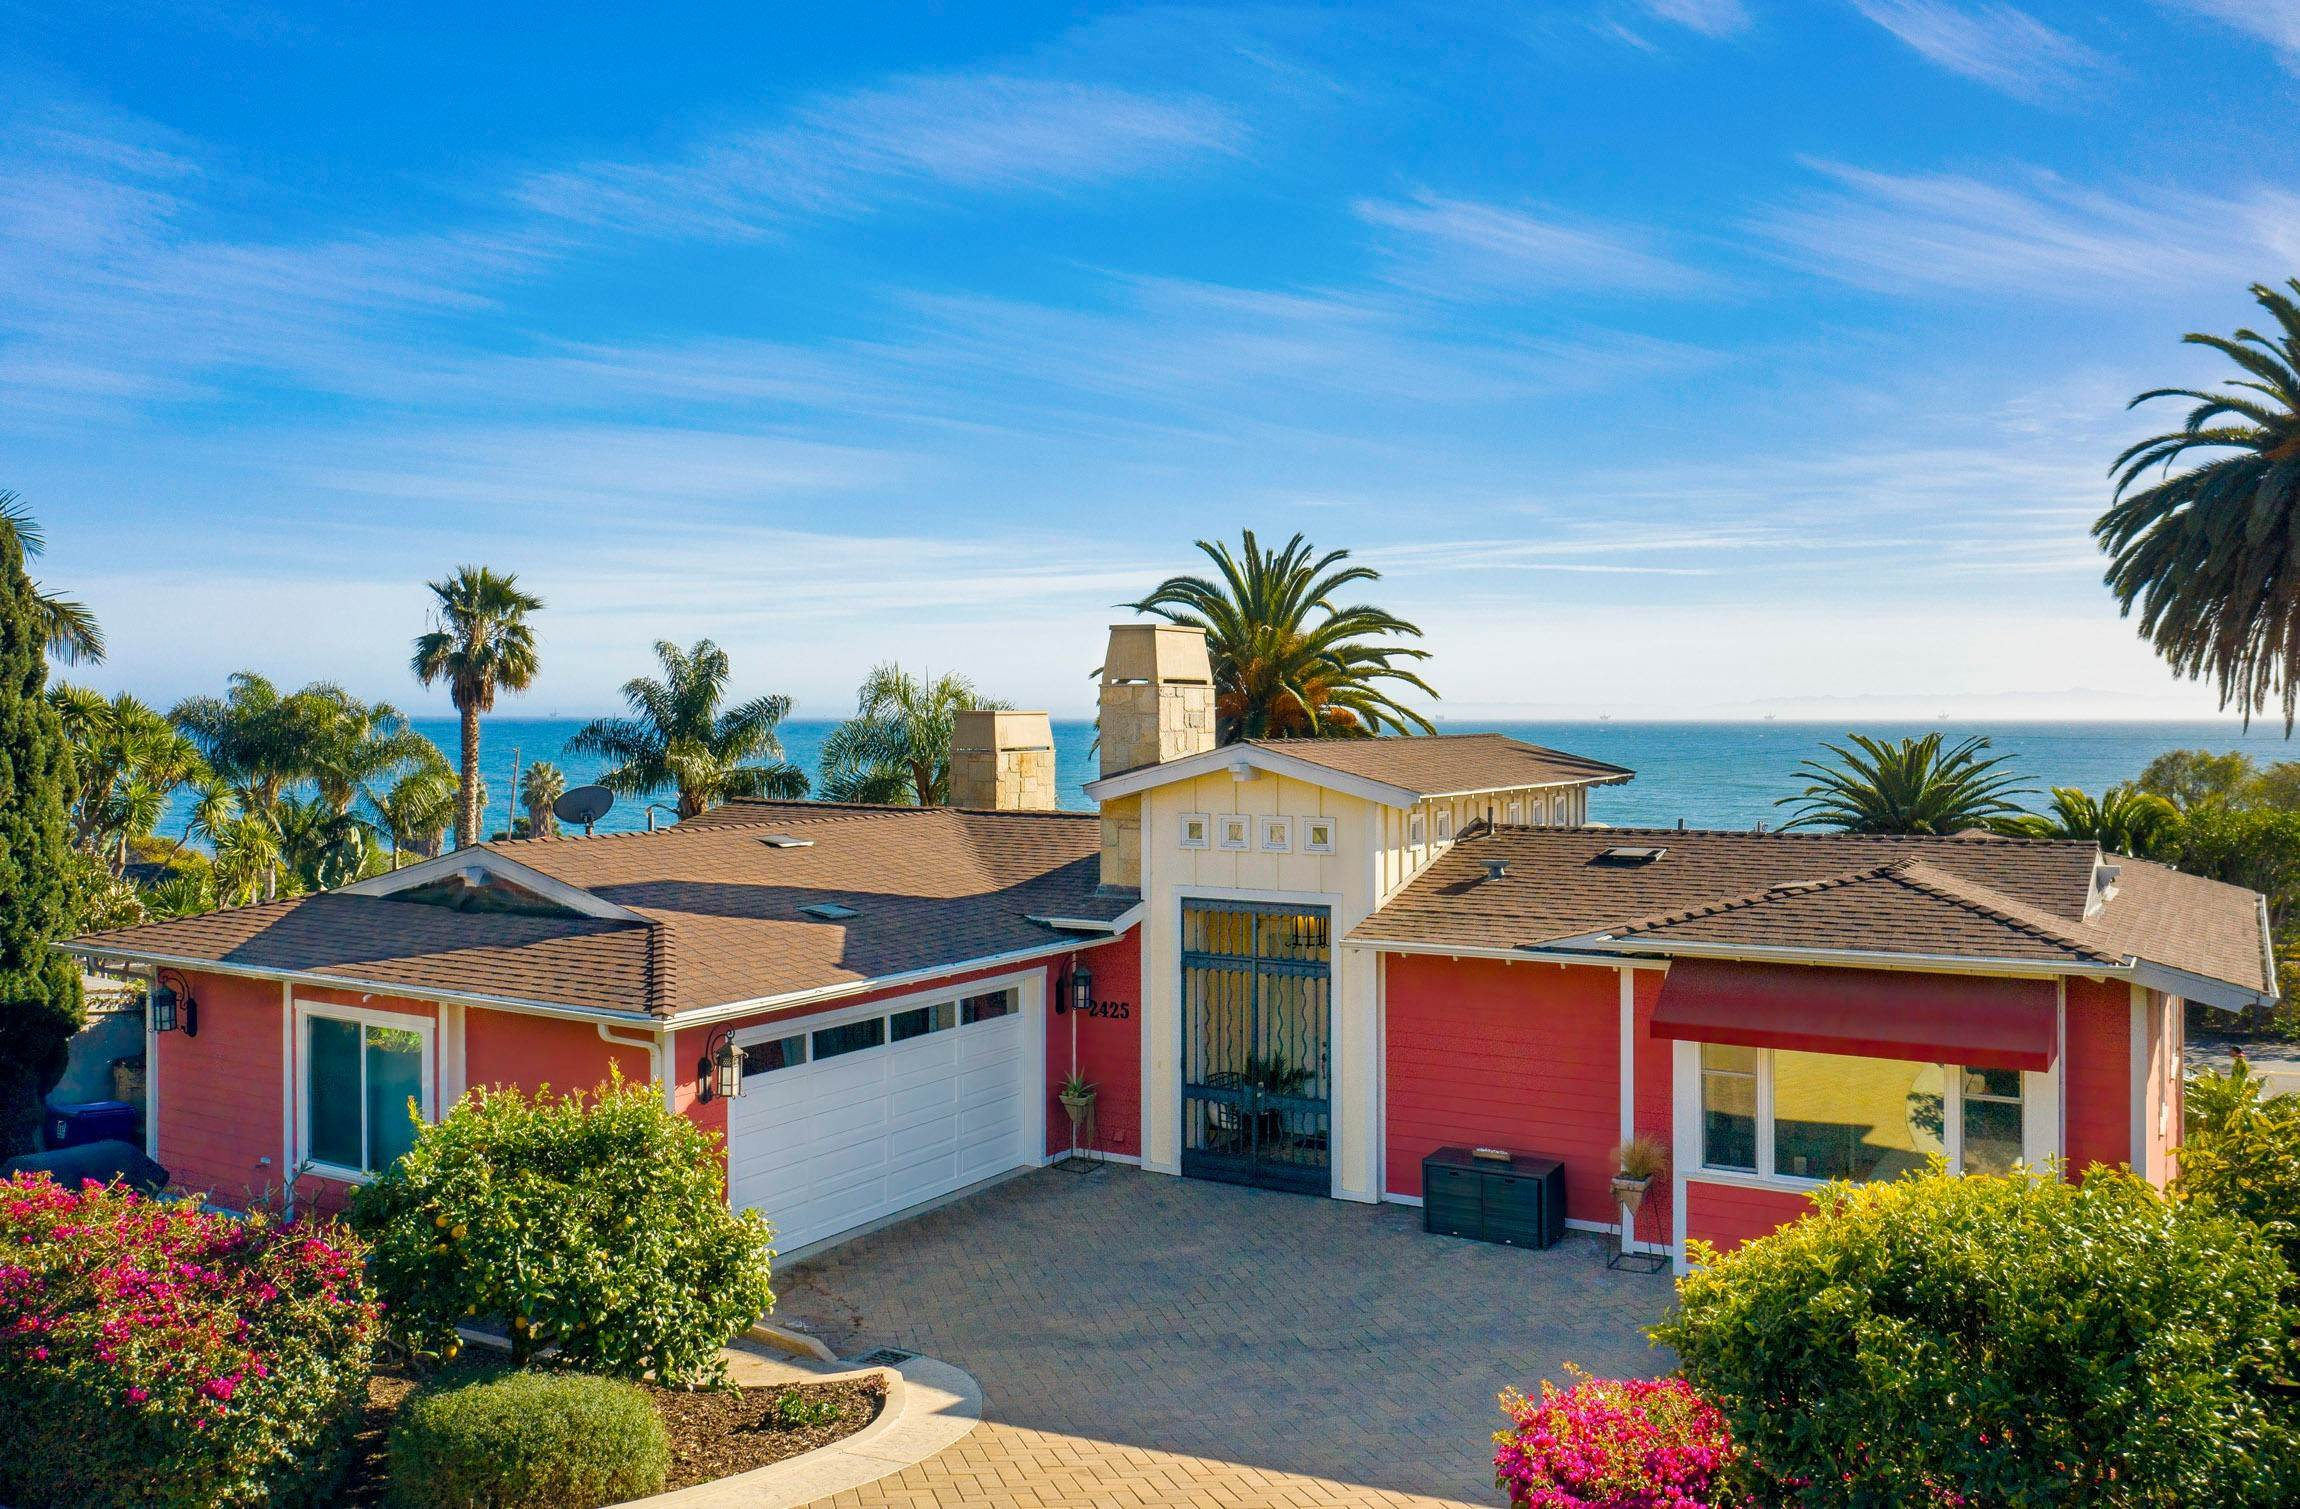 Co-op / Condo for Sale at 2425 Varley Street Summerland, California 93067 United States